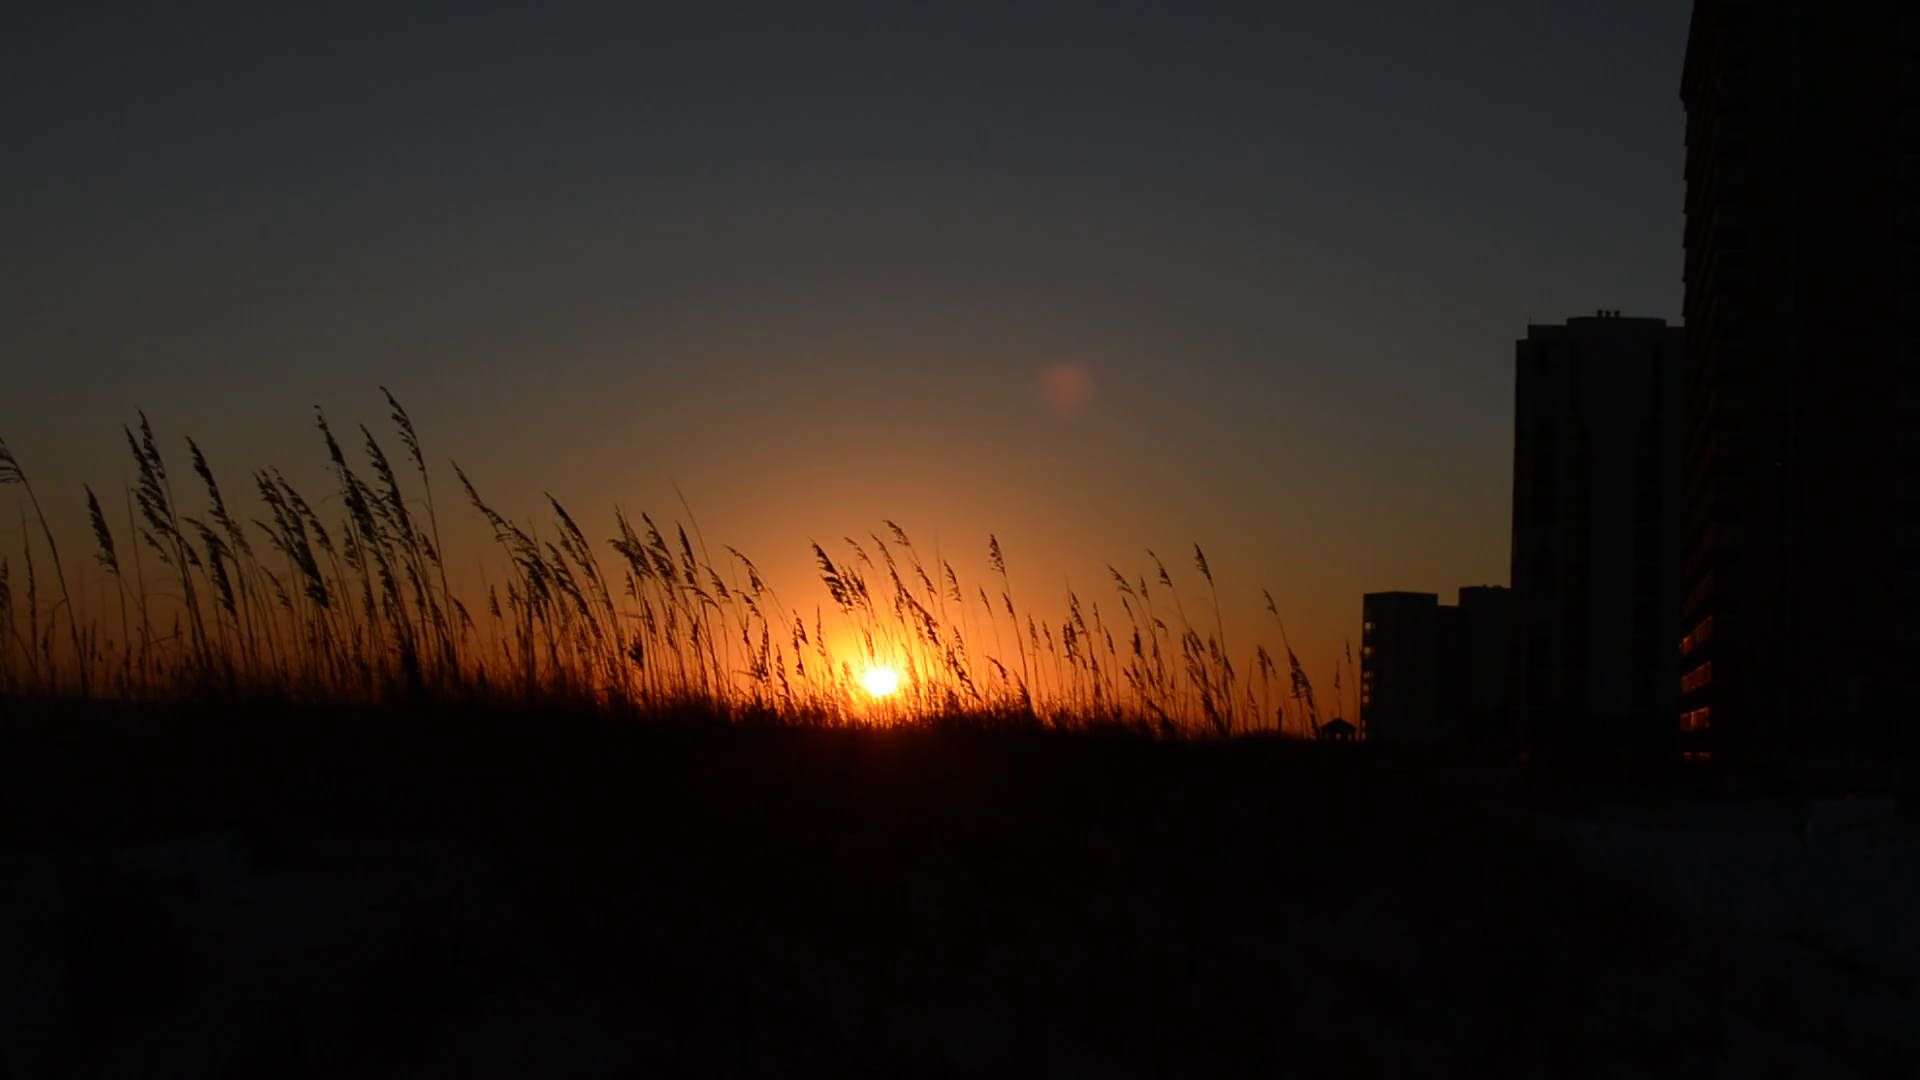 Sunset Through Grass Stock Video Footage - VideoBlocks